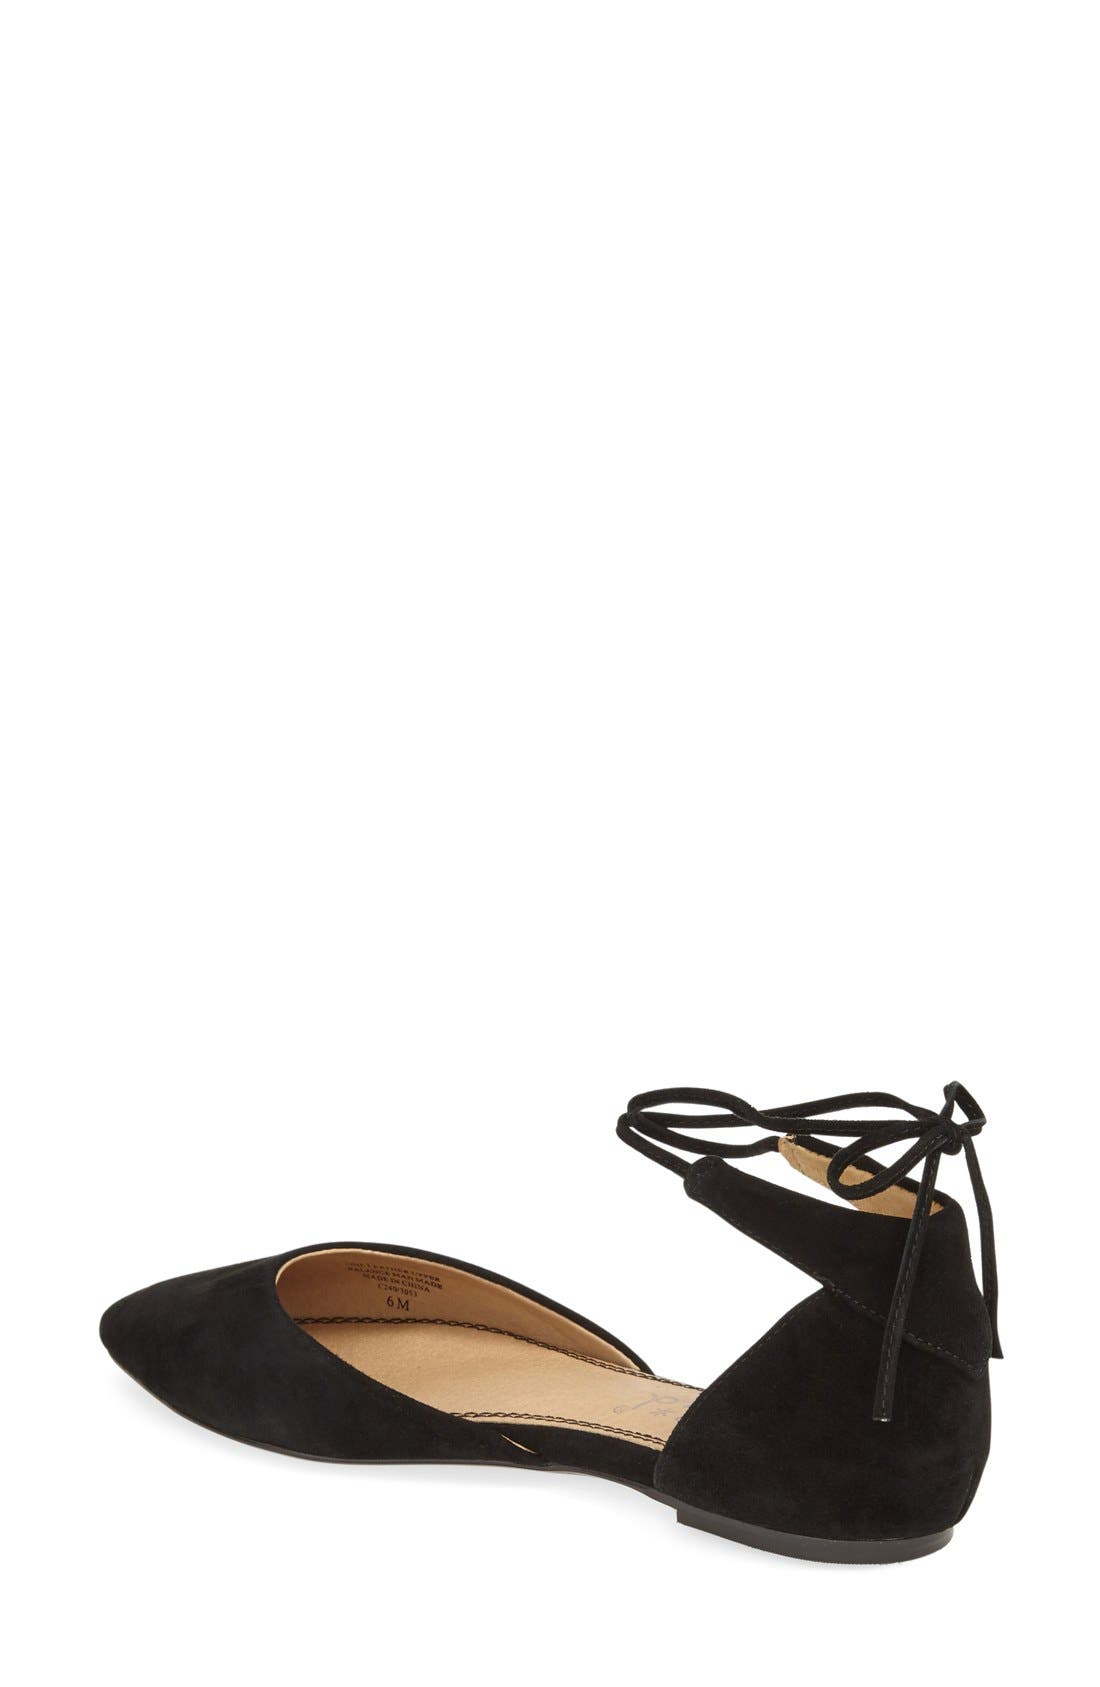 'Annabelle' Lace-Up d'Orsay Flat,                             Alternate thumbnail 2, color,                             001